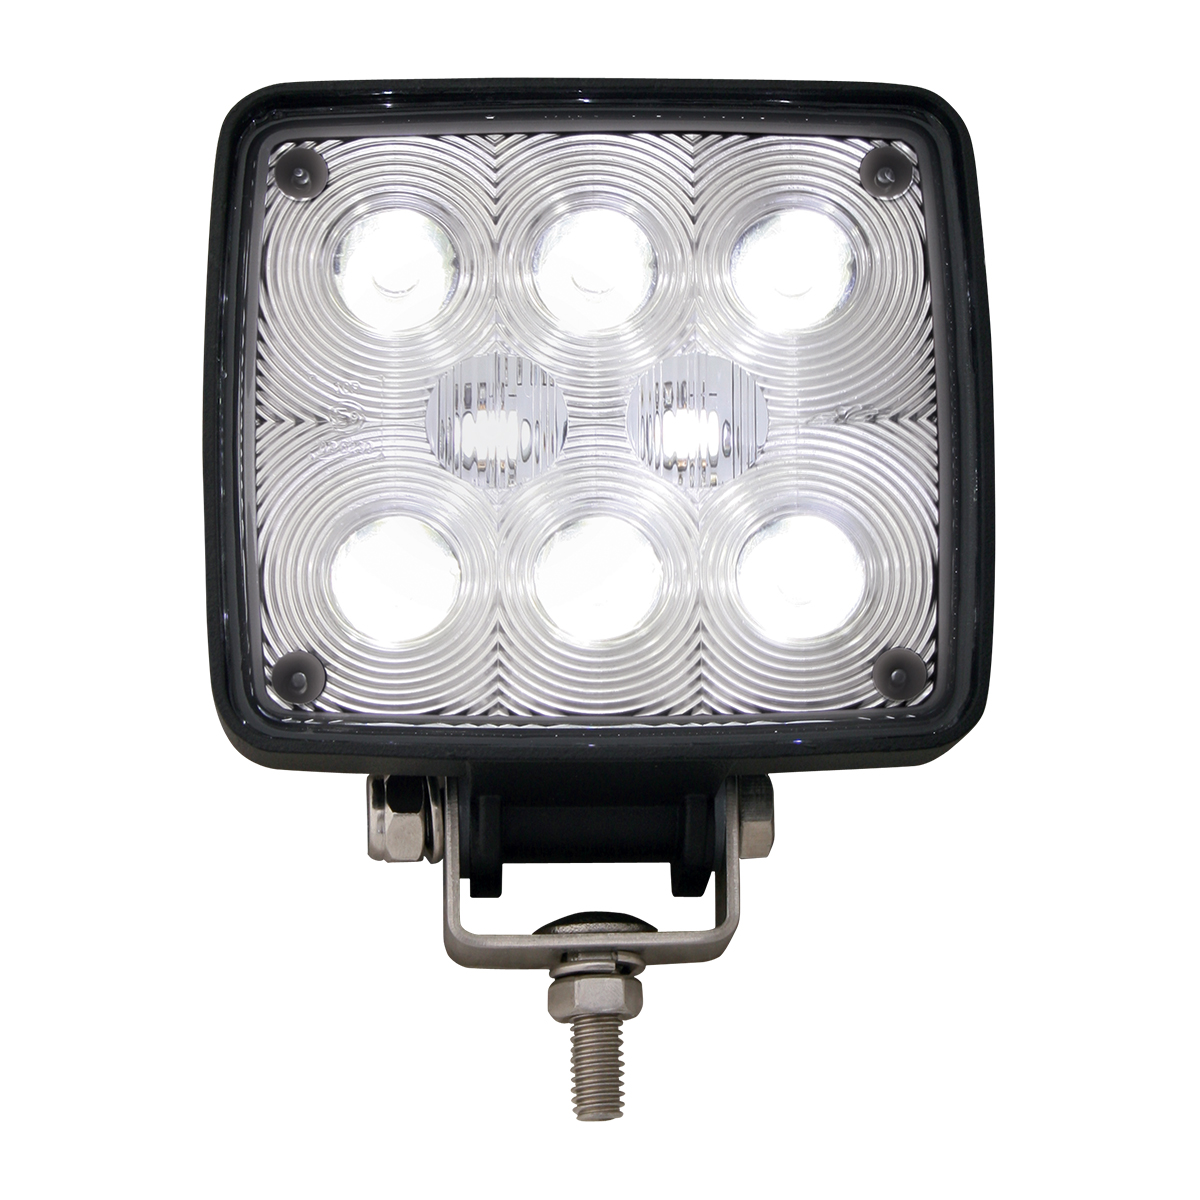 GG Grand General 81751 Stainless Steel Medium Z Bracket with 4.5 inches LED Work Light